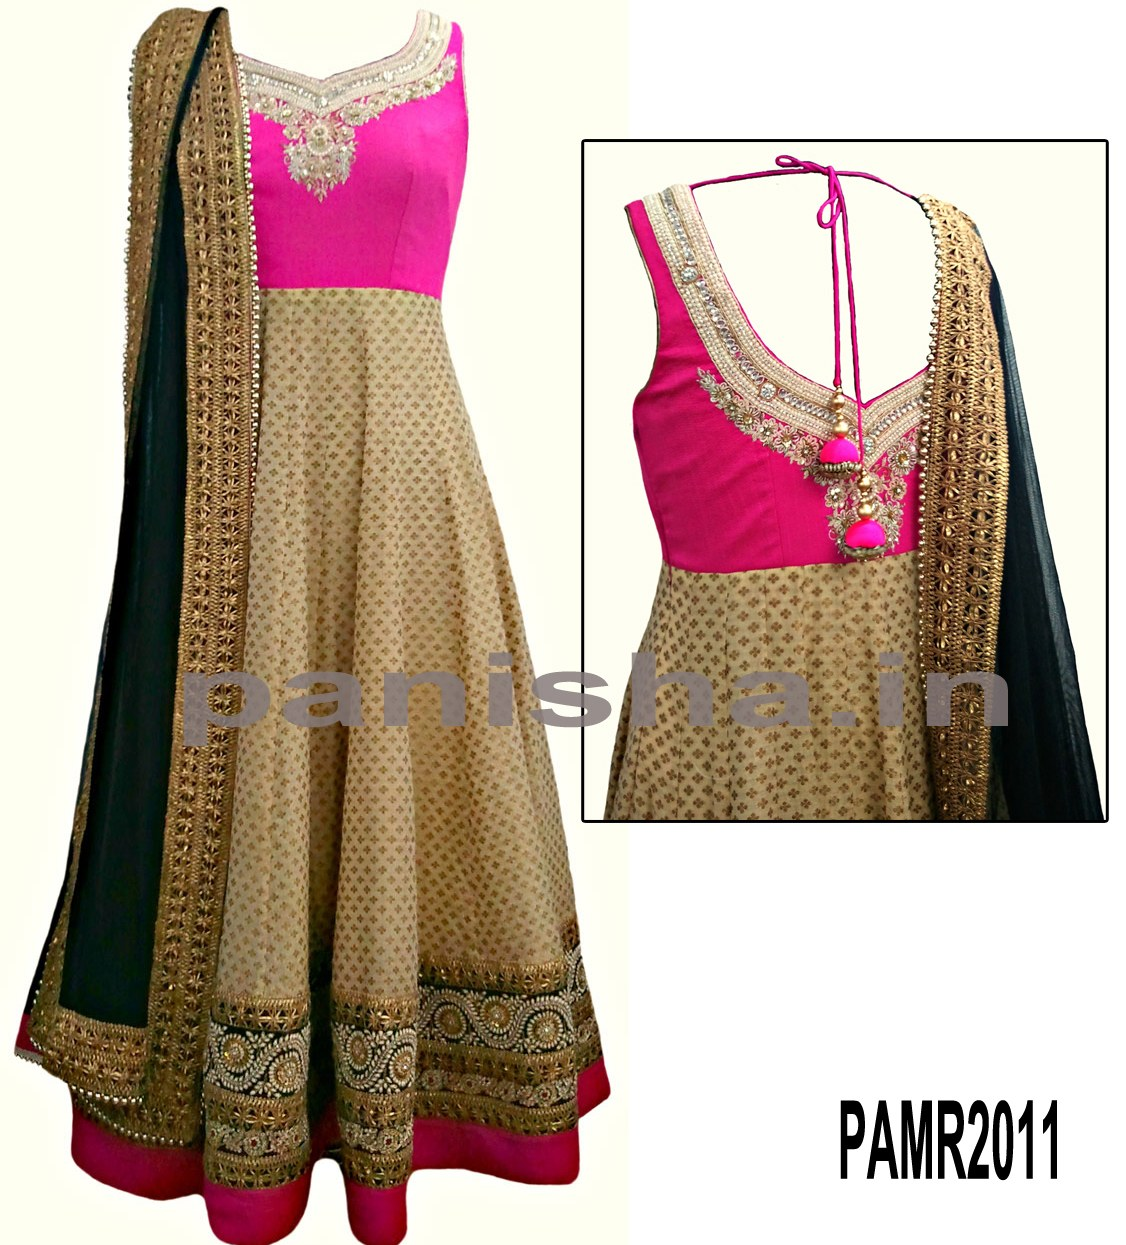 Indian Designer Clothes Replica Clothing panisha